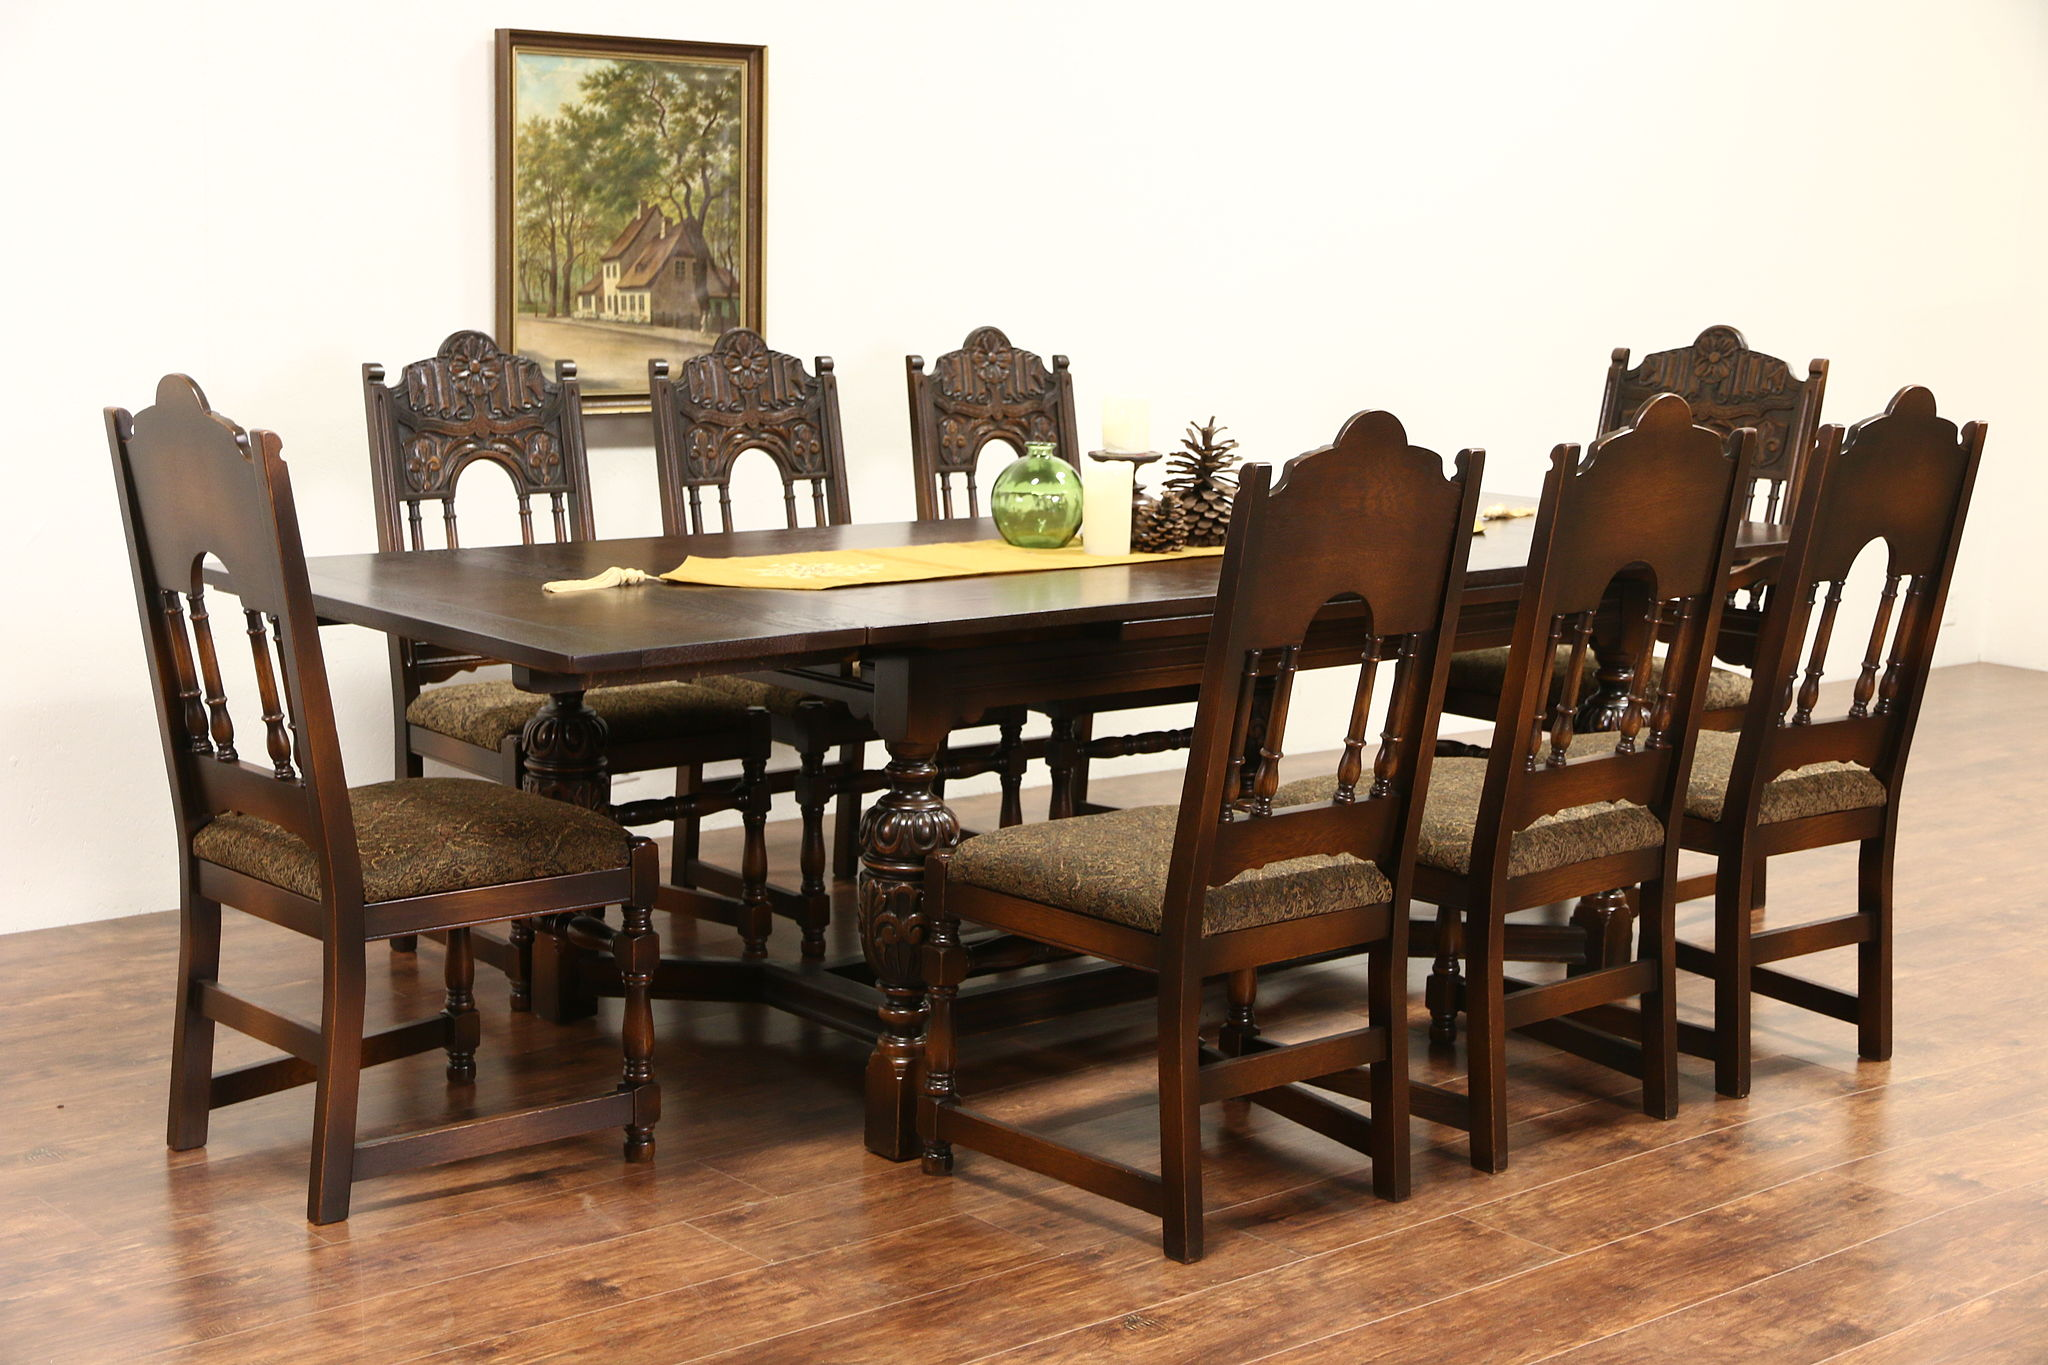 English Tudor Carved Oak 1925 Antique Dining Set, Table U0026 8 Chairs